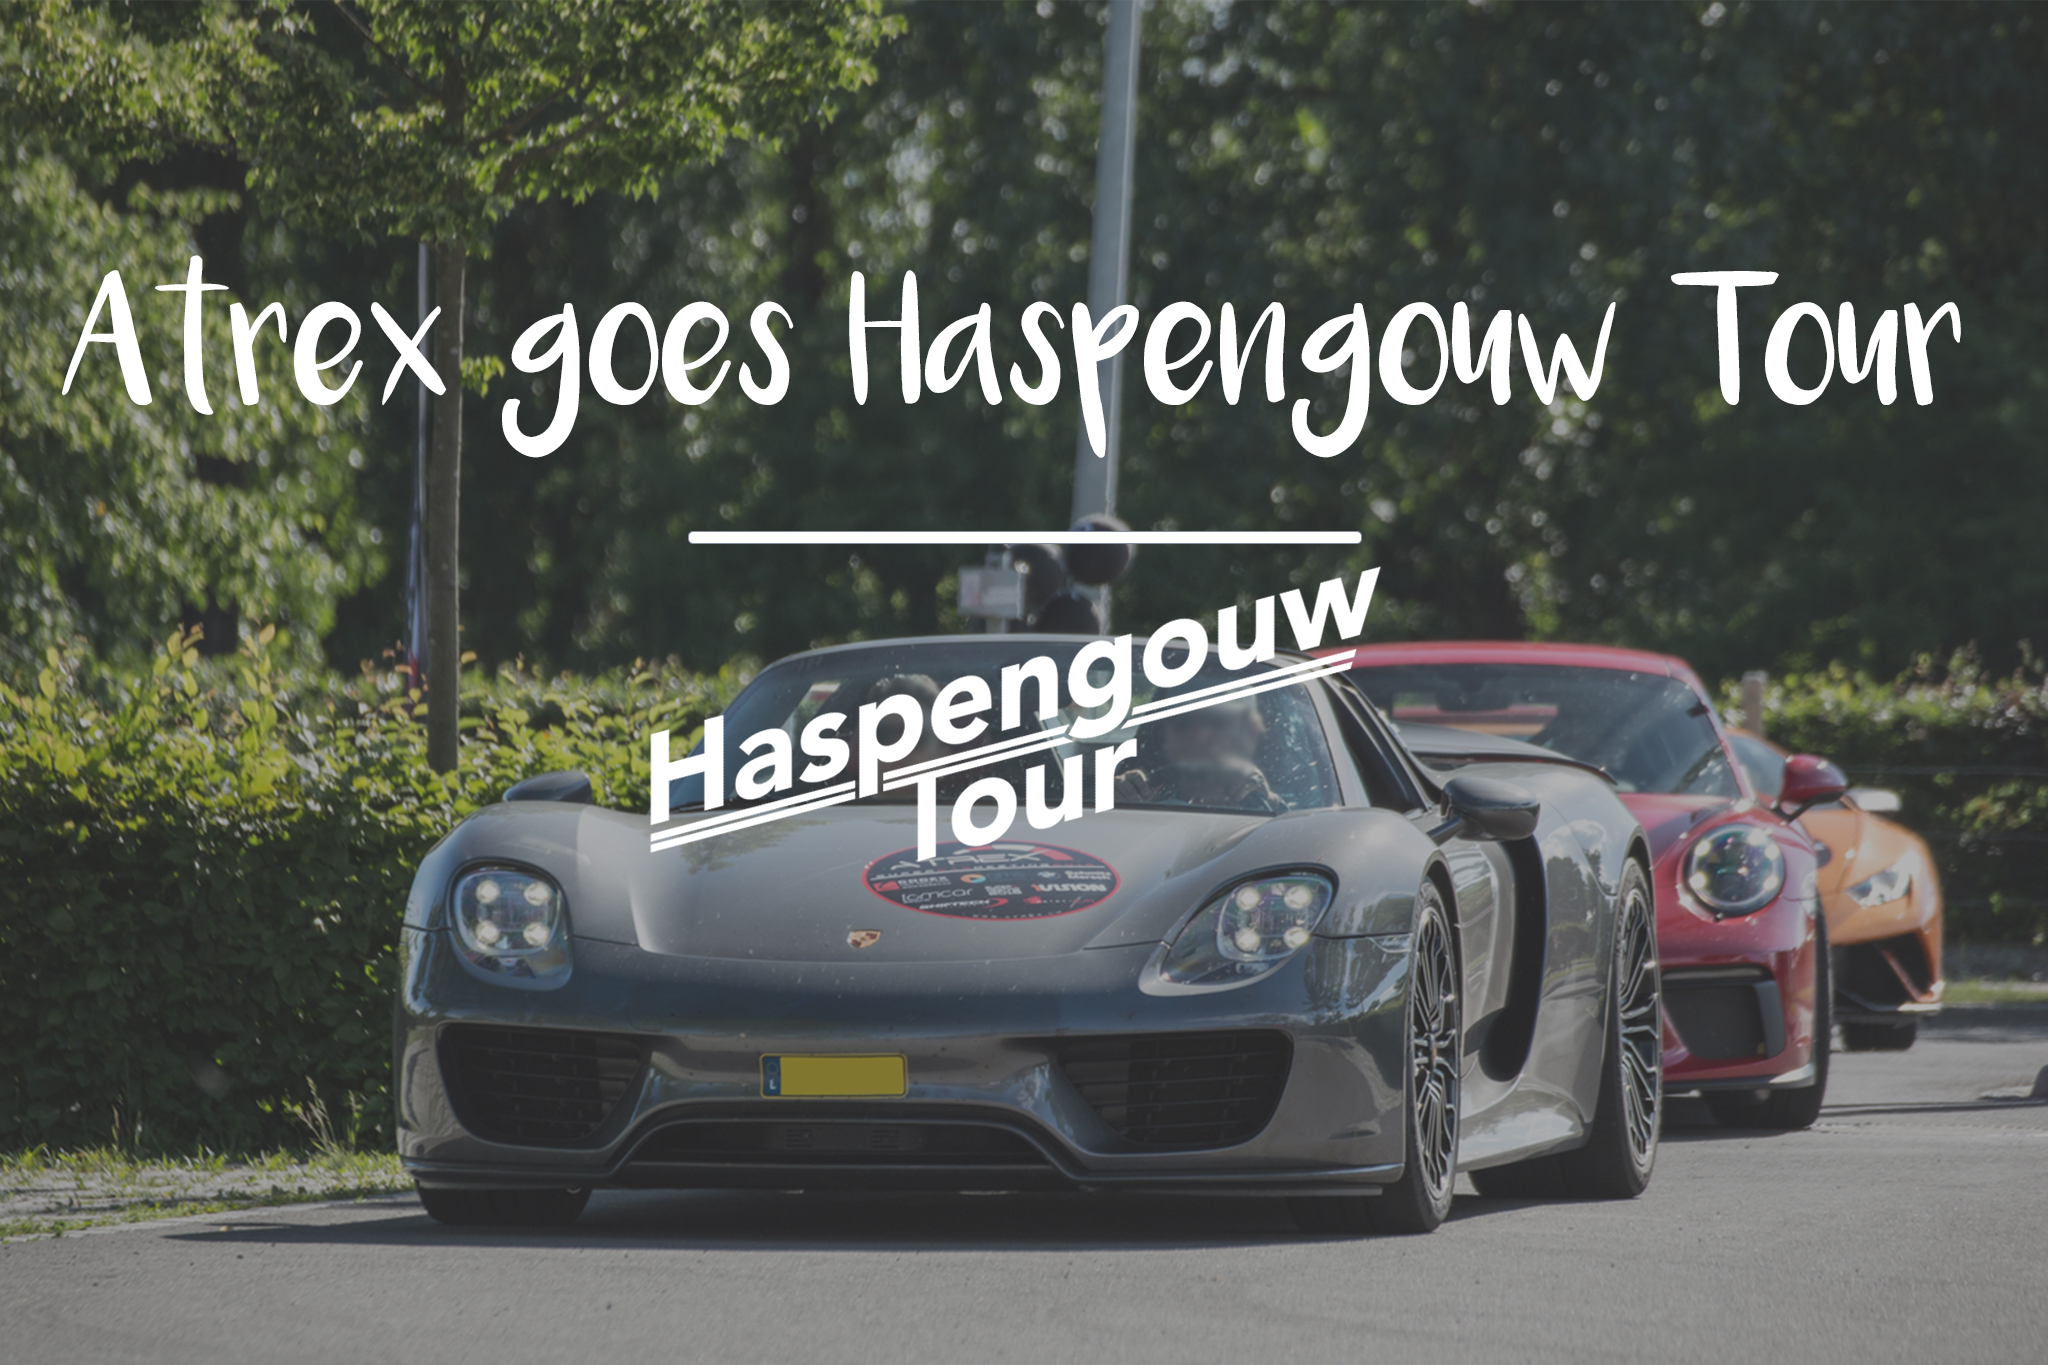 Atrex goes Haspengouw Tour [SOLD OUT]